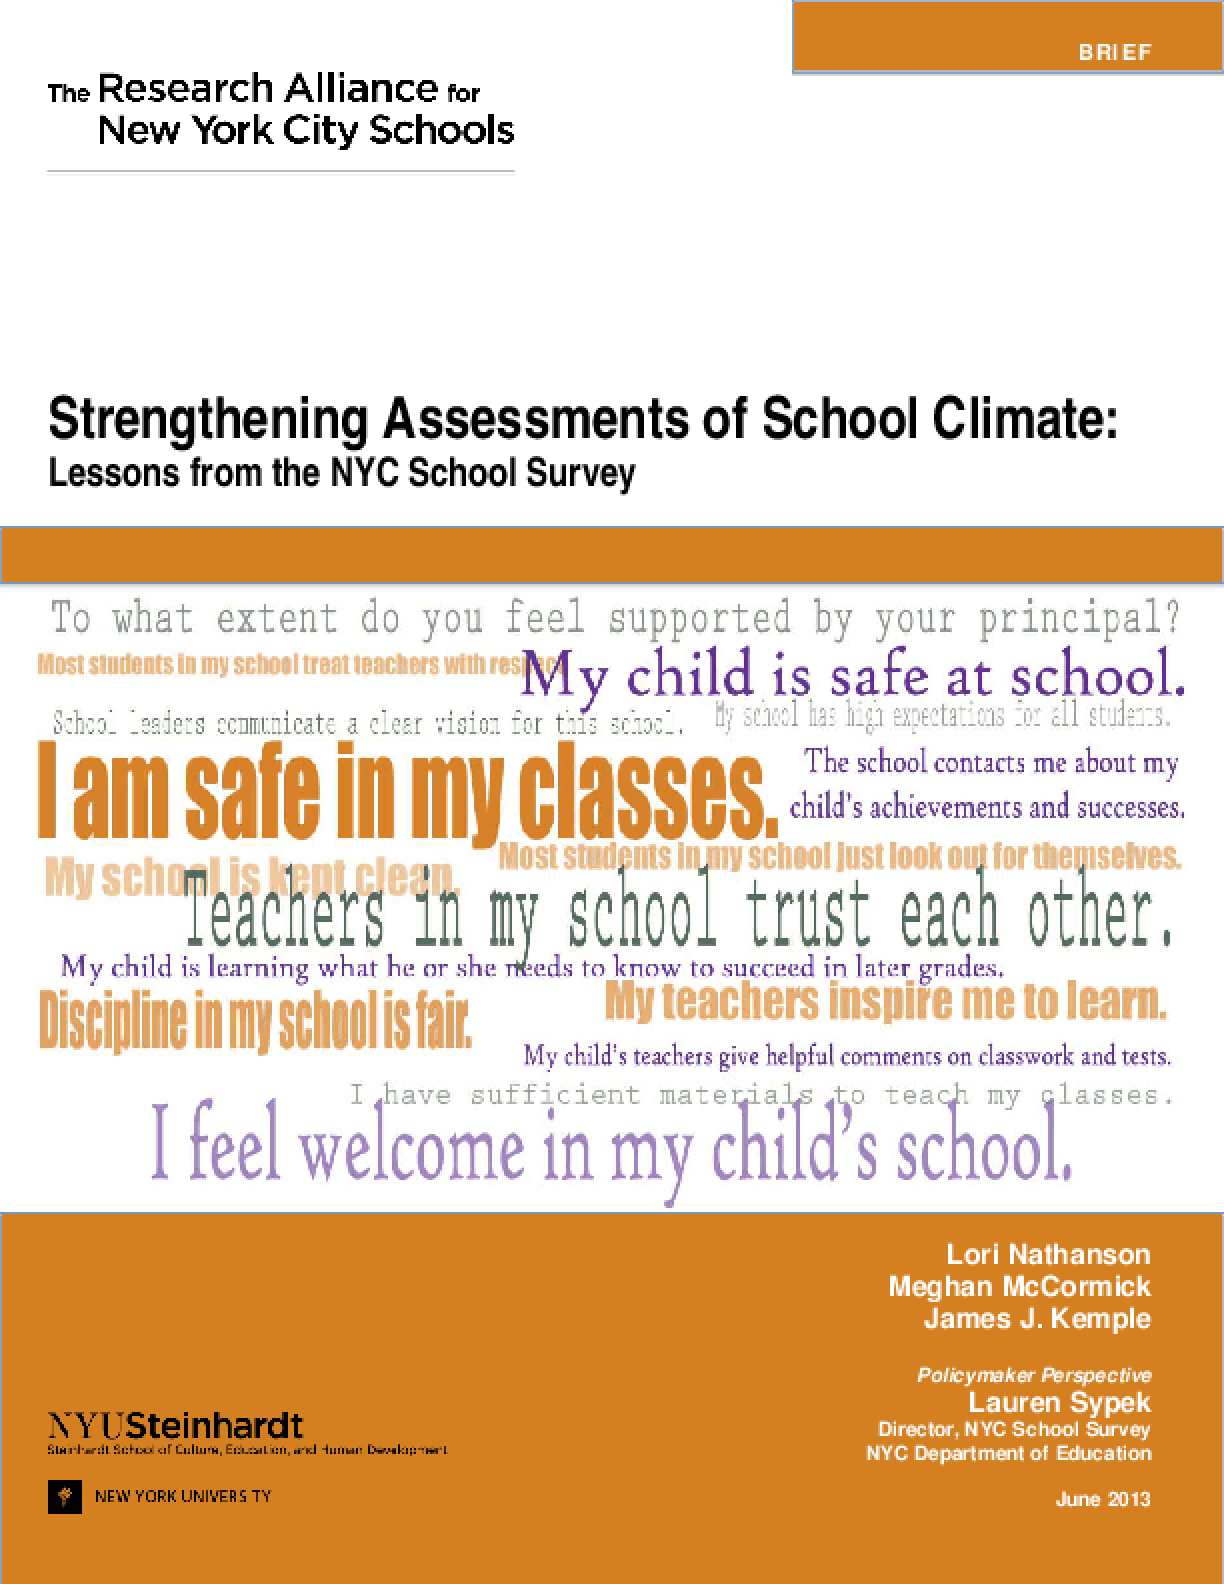 Strengthening Assessments of School Climate: Lessons from the NYC School Survey